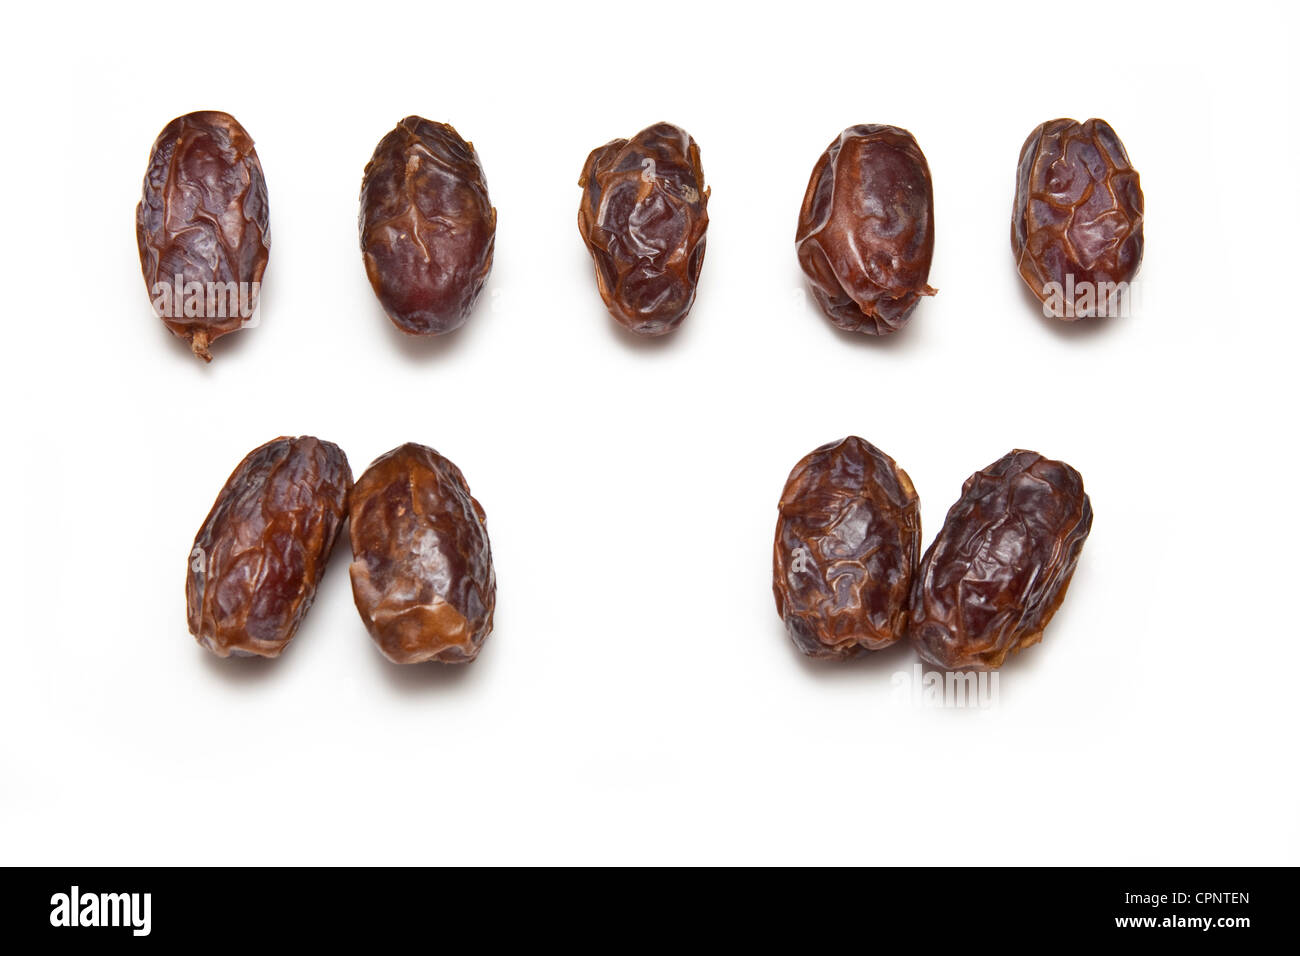 Dried Medjool dates isolated on a white studio background. - Stock Image